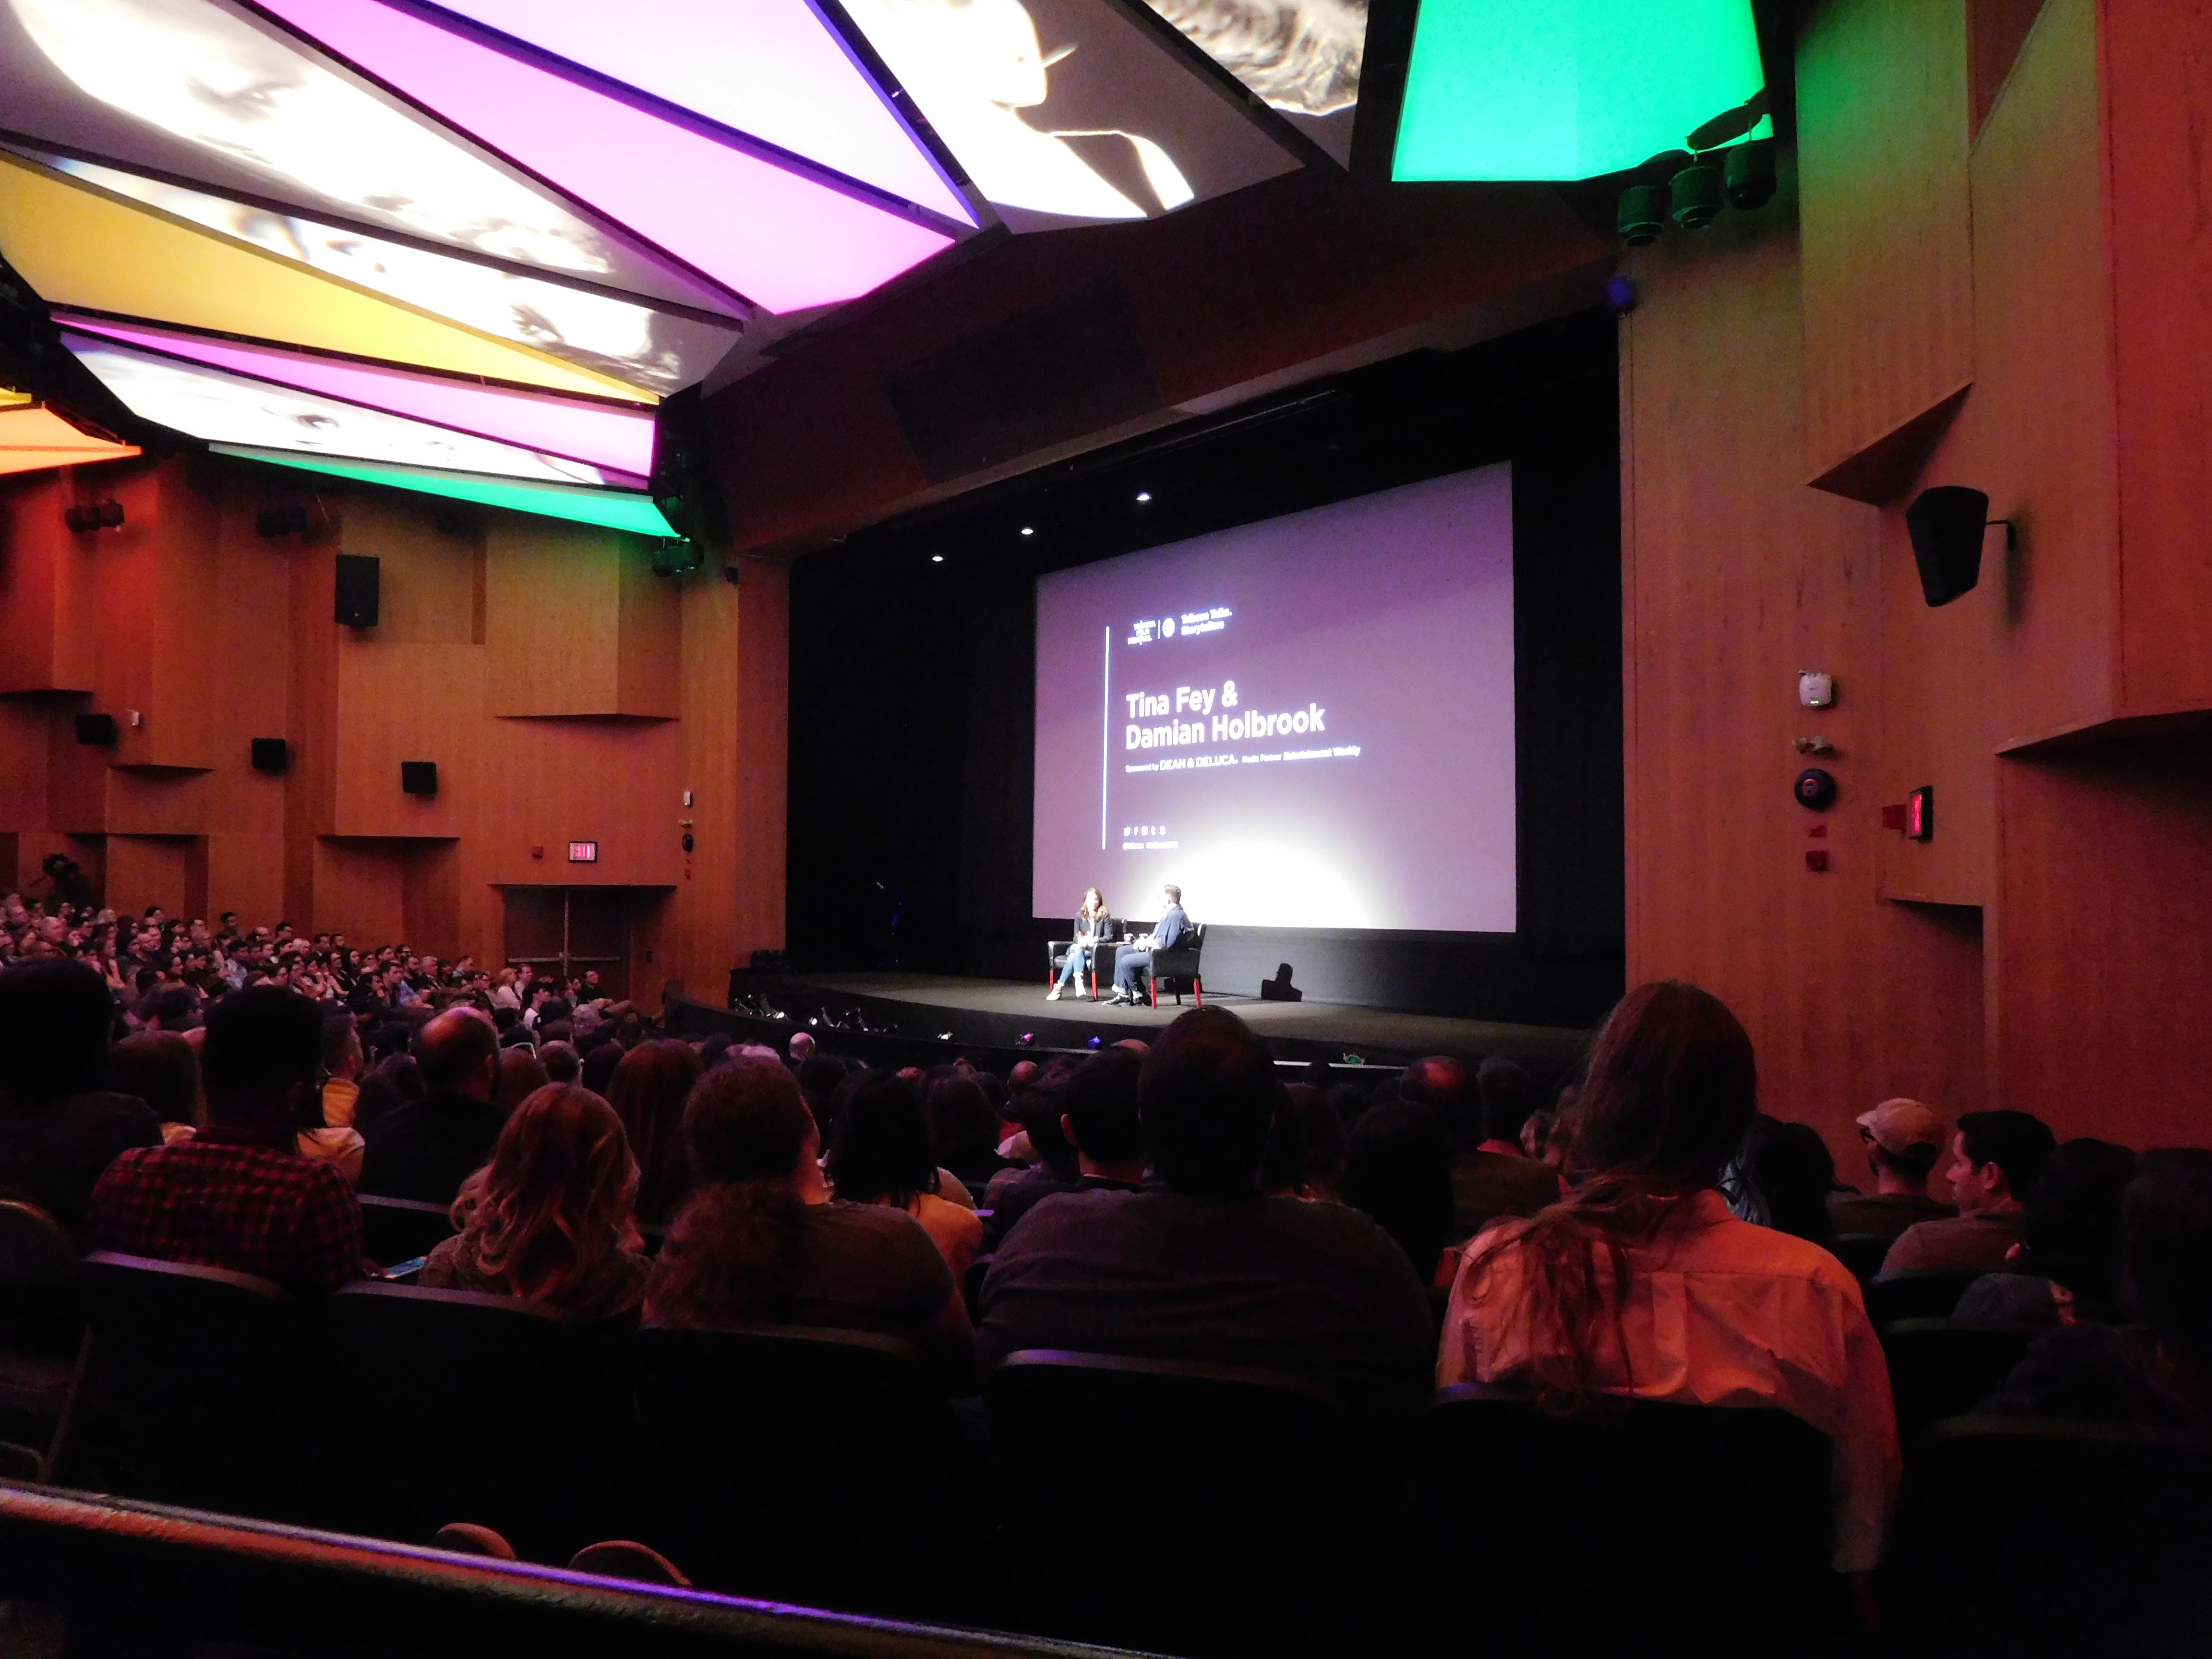 Tina Fey at Tribeca was awesome